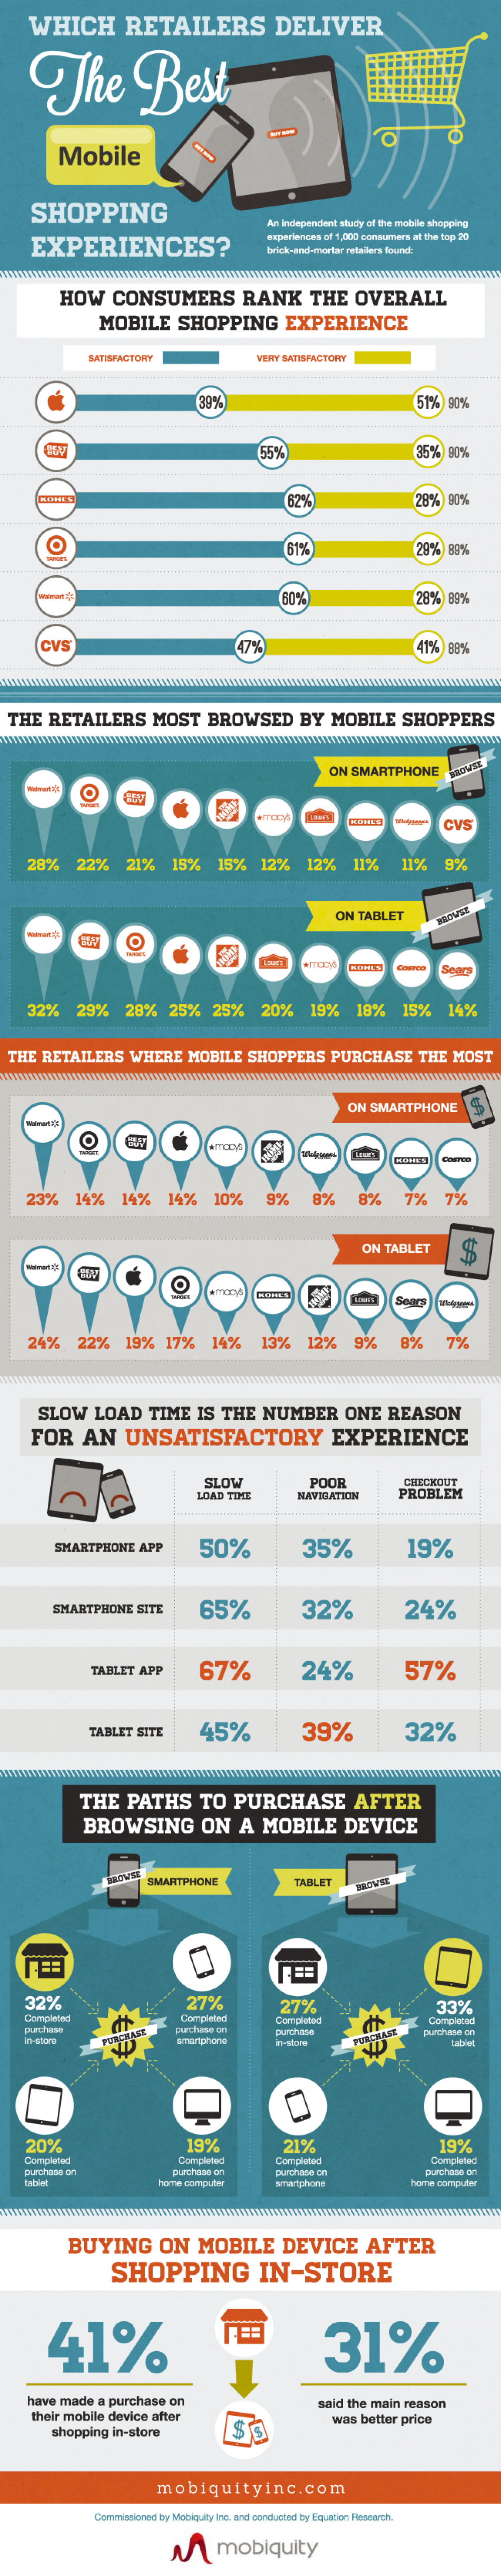 Mobile Retail Experience Infographic